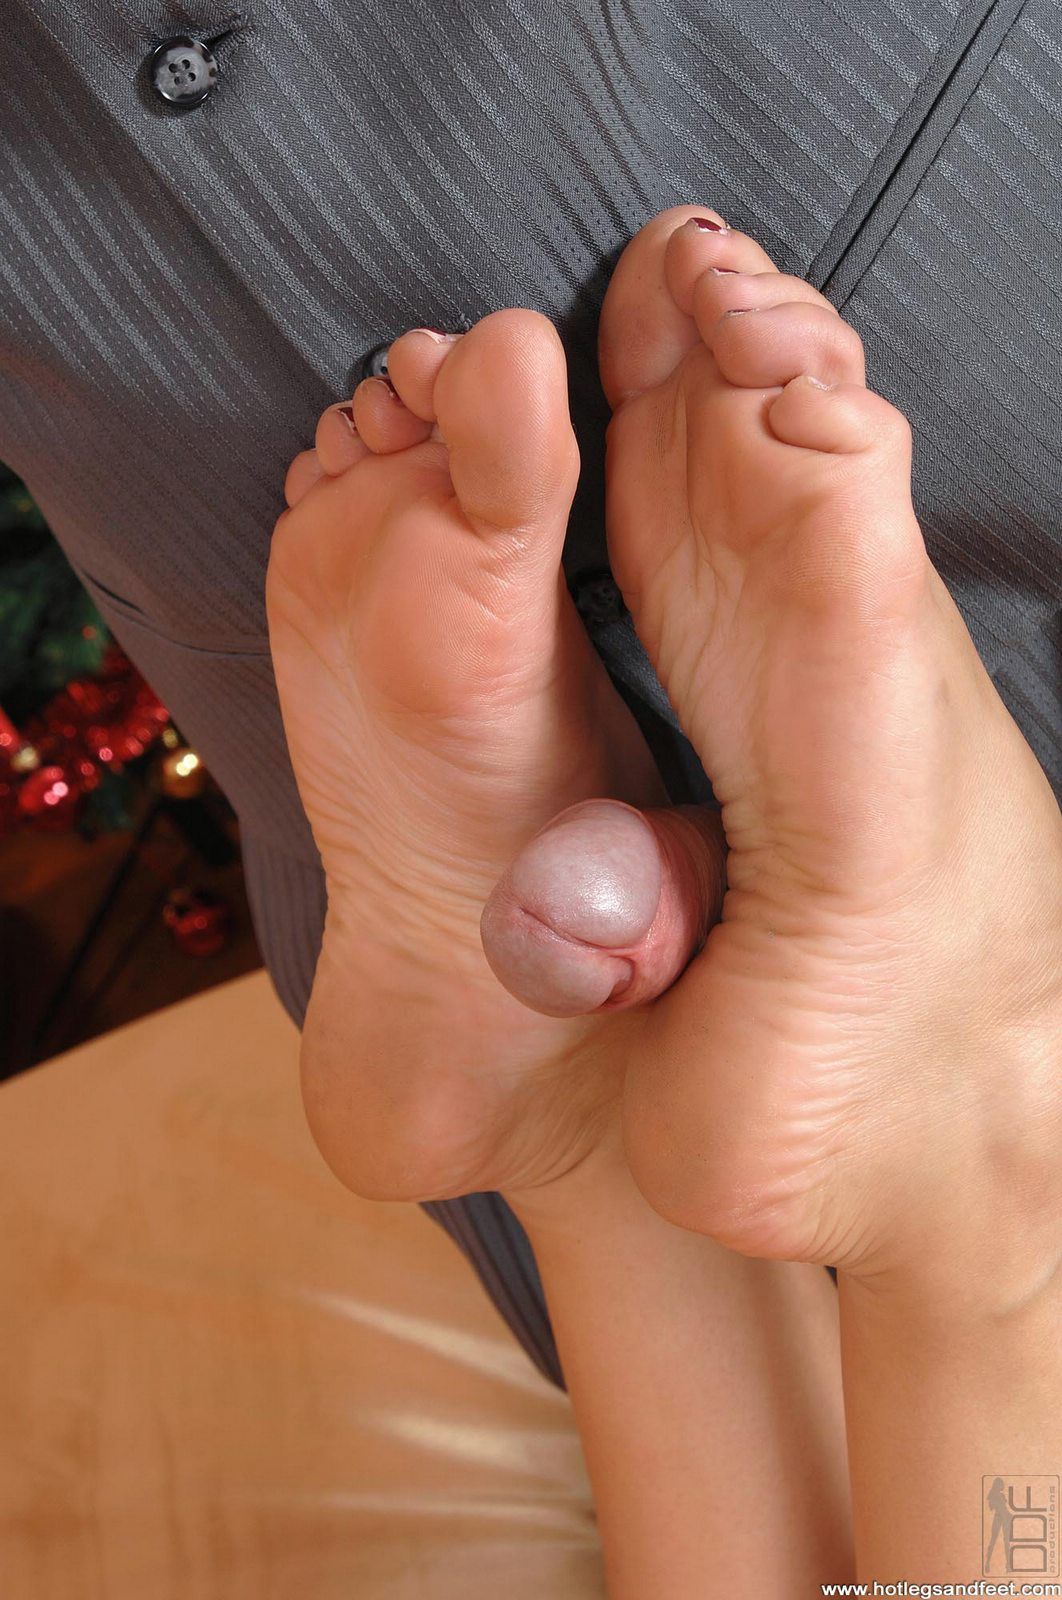 Blowjob and footjob